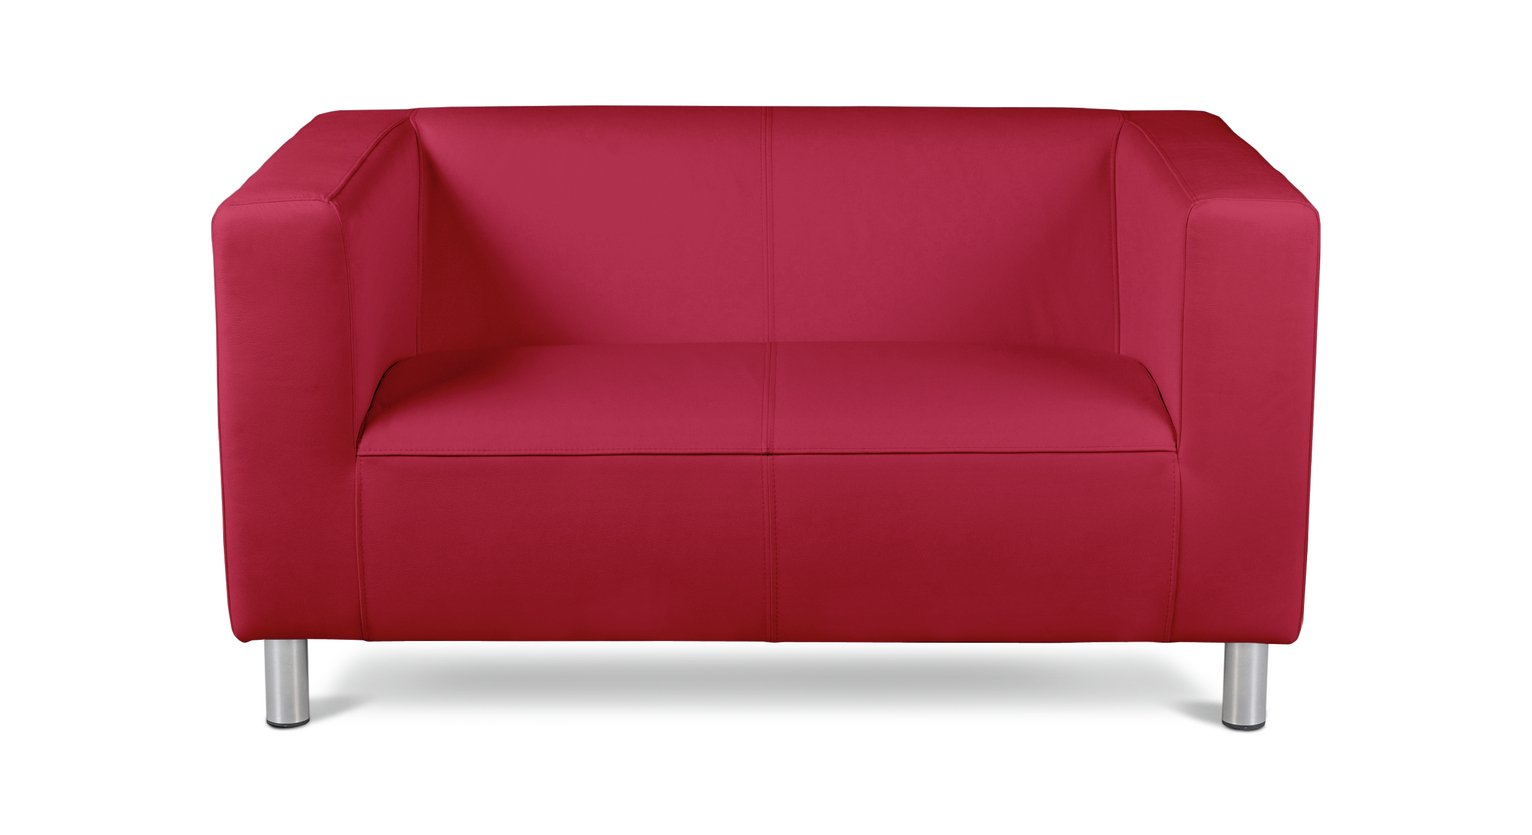 Argos Home Moda Compact 2 Seater Faux Leather Sofa - Red